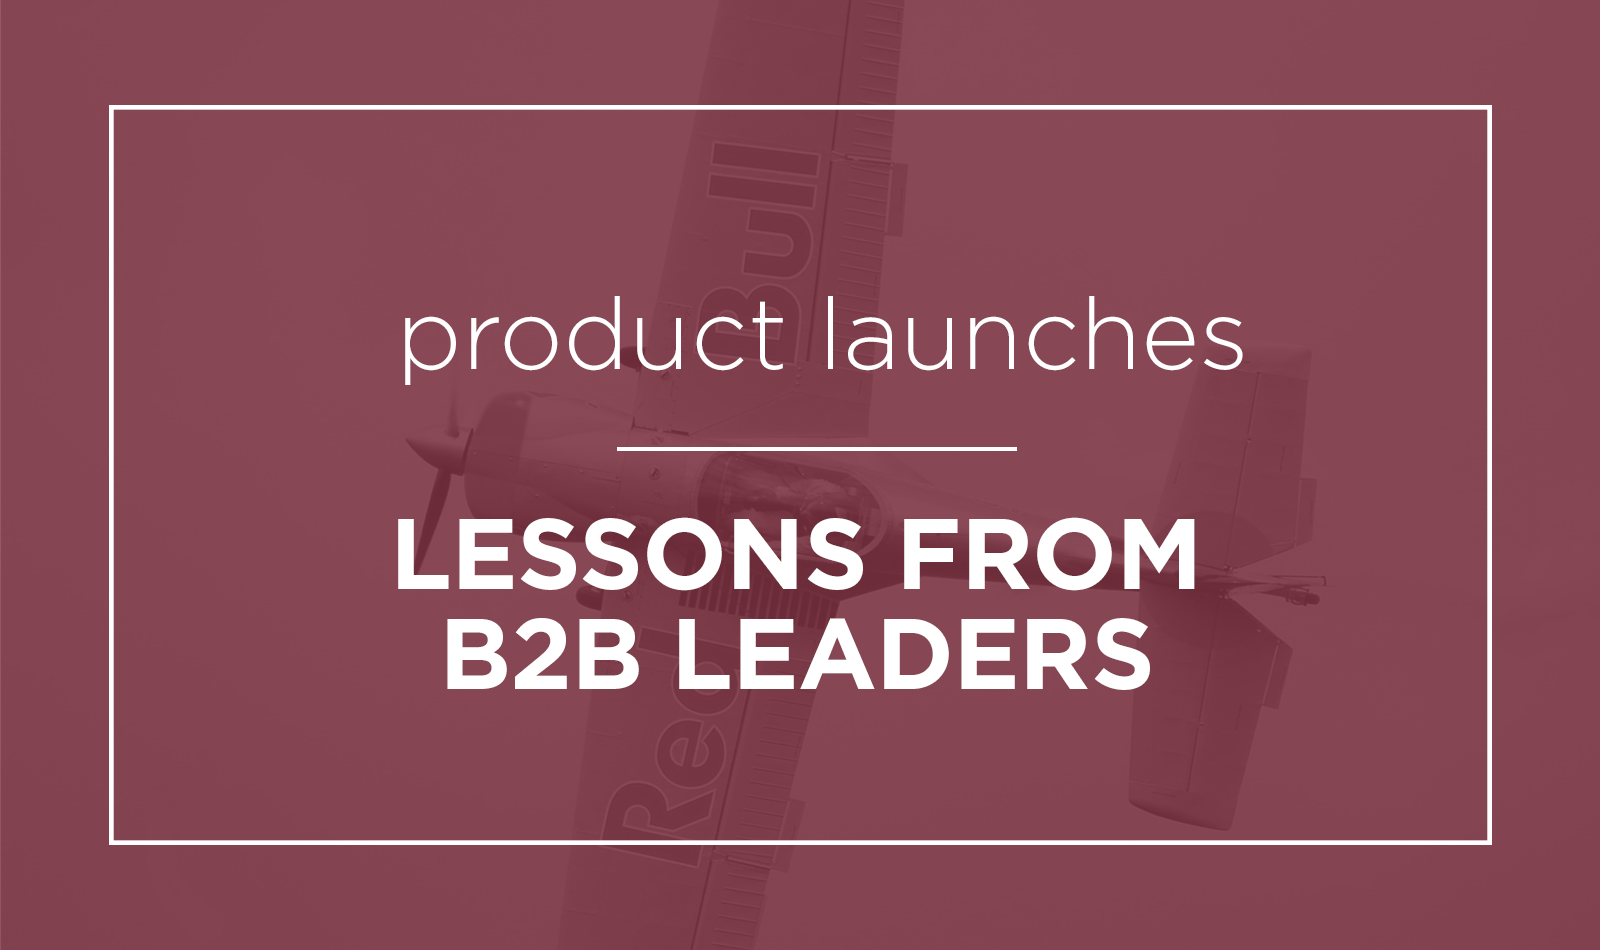 product-launch-lessons-leaders-red-bull-plane